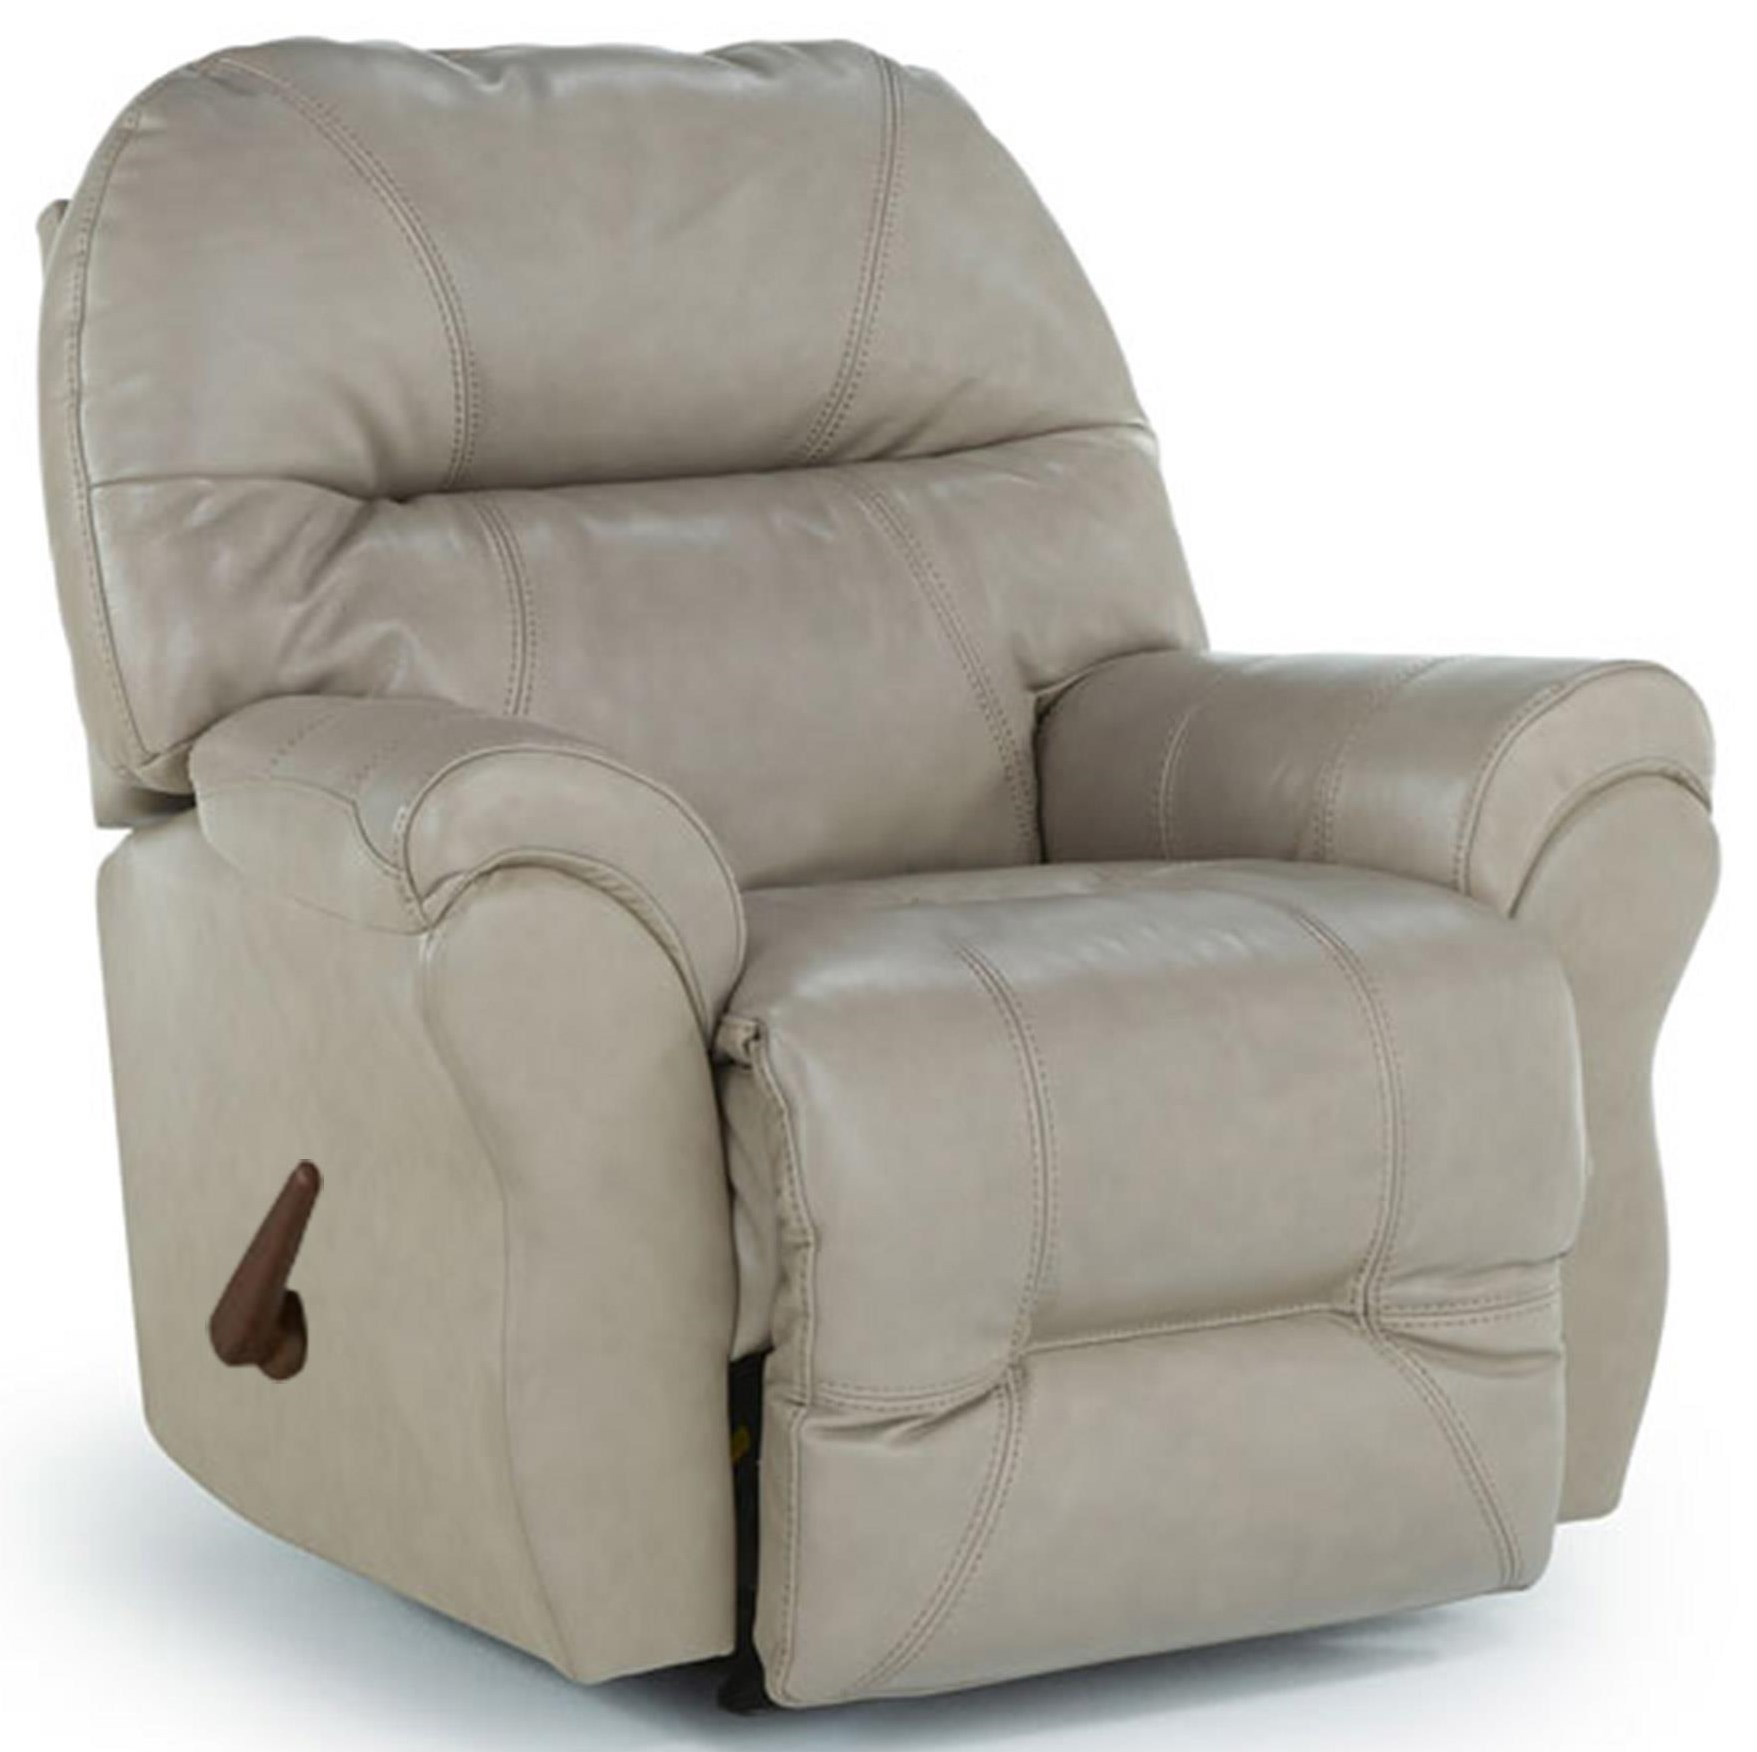 Elephant Leather Rocker Recliner